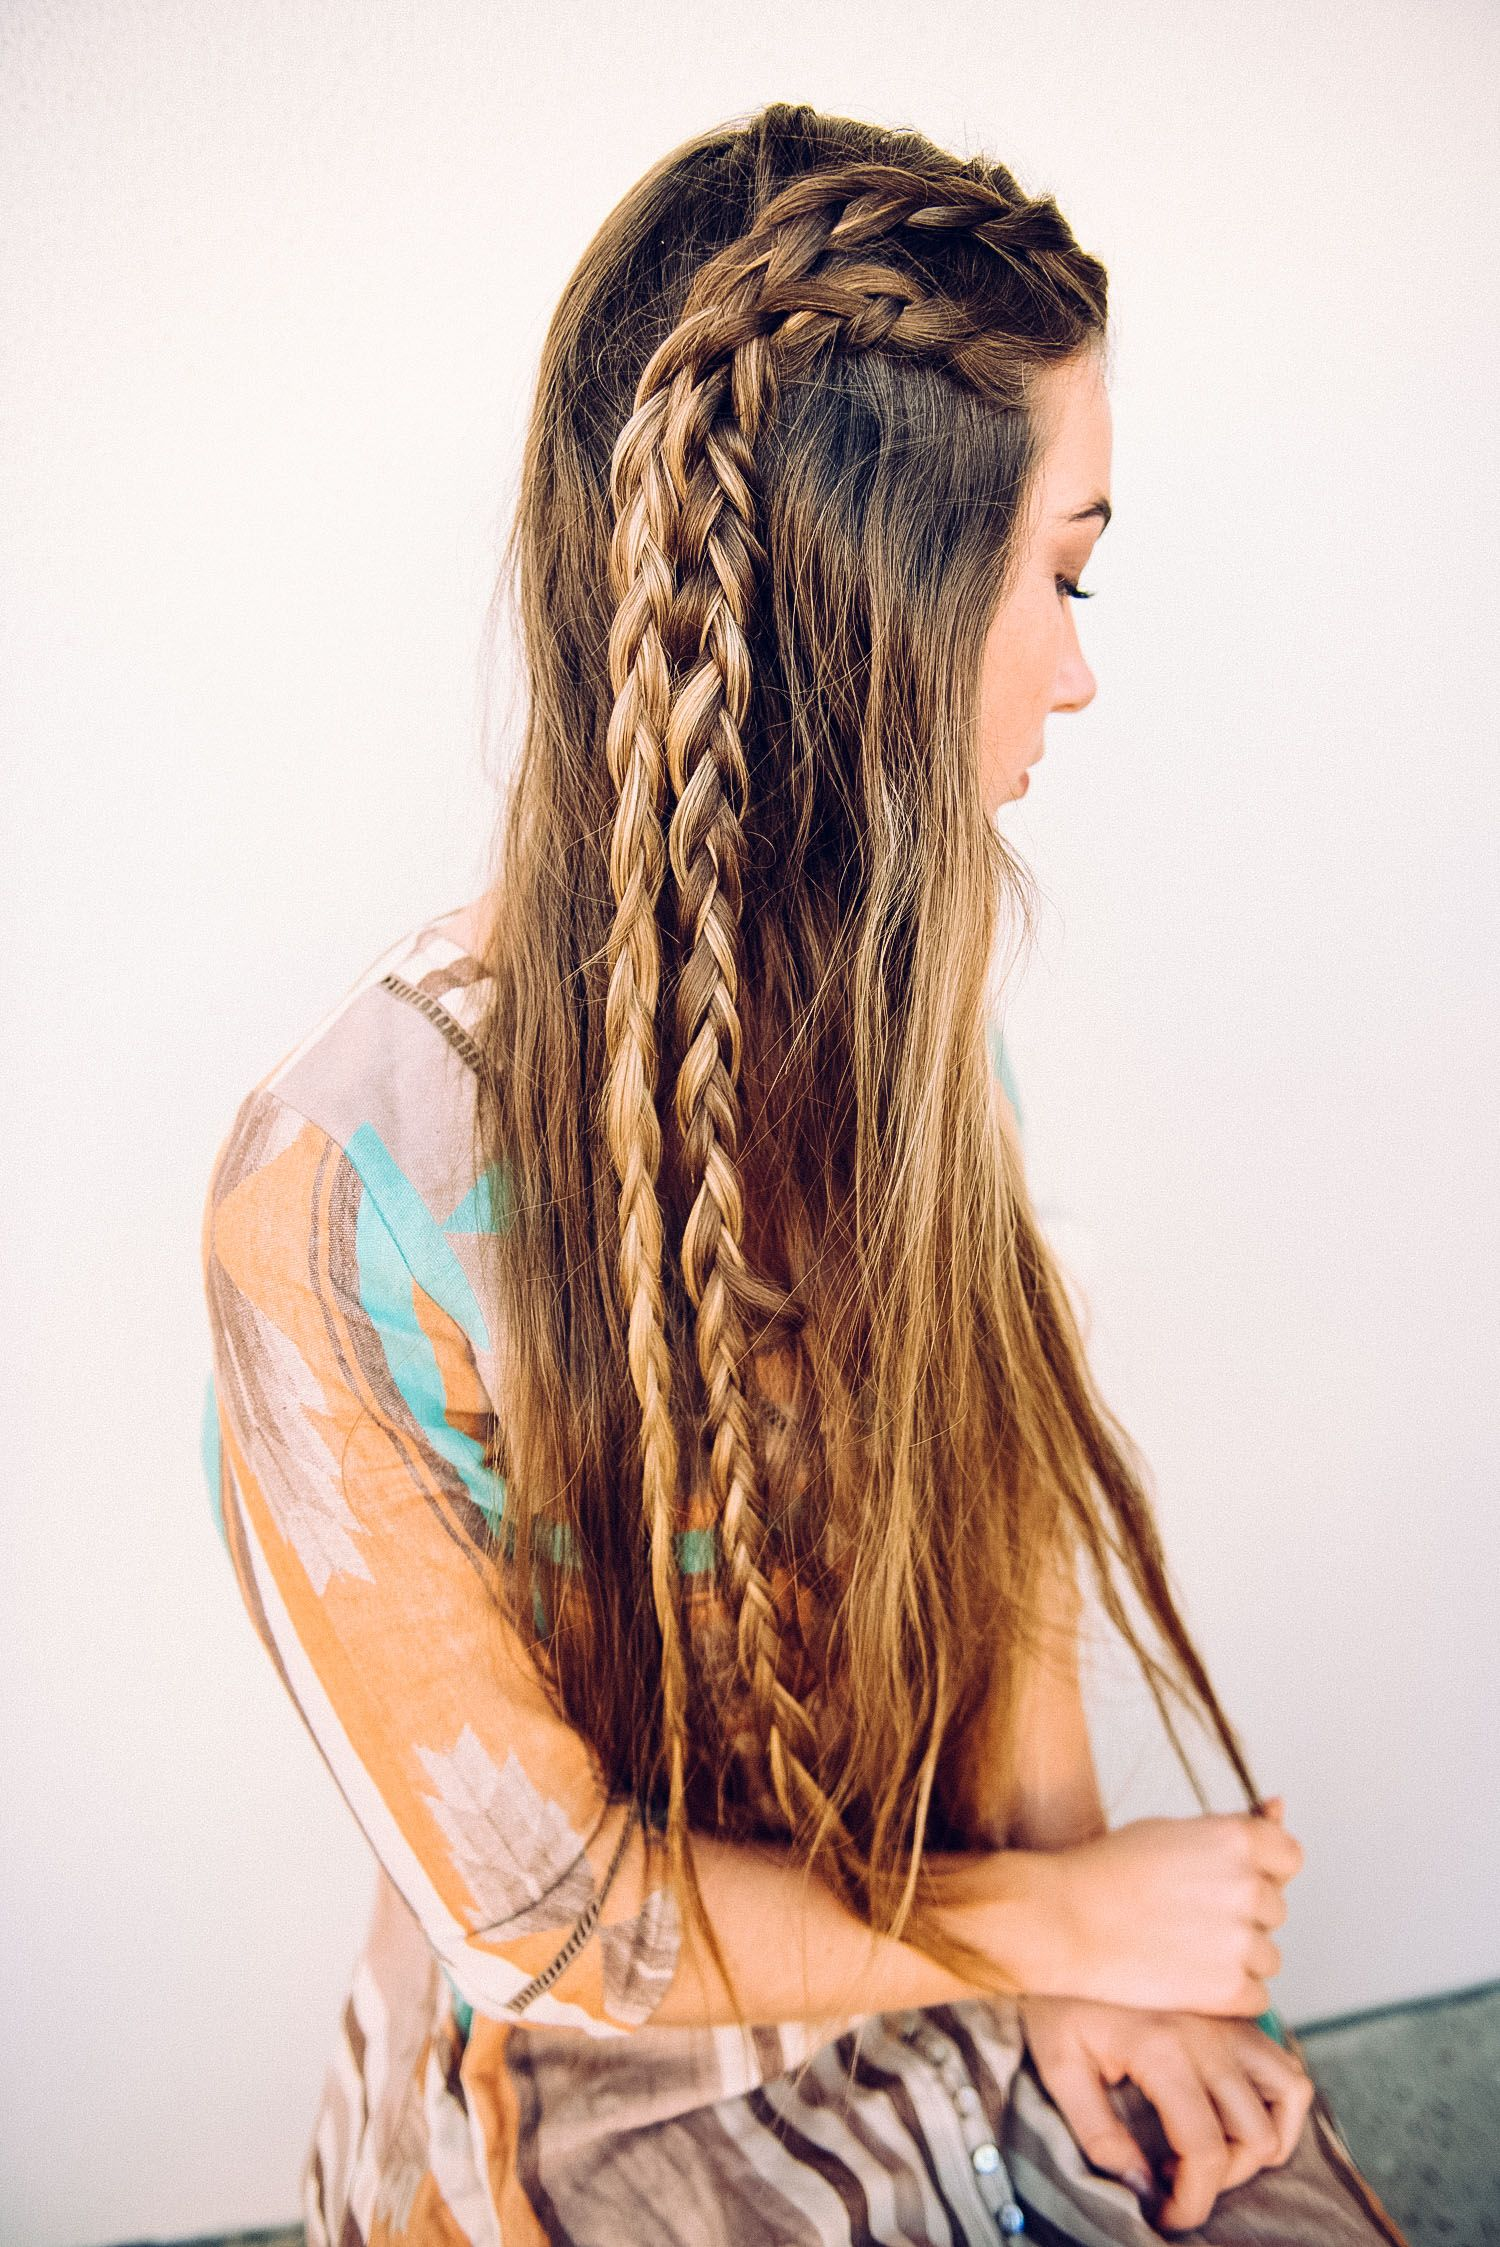 Much tumblr boho chic hairstyles